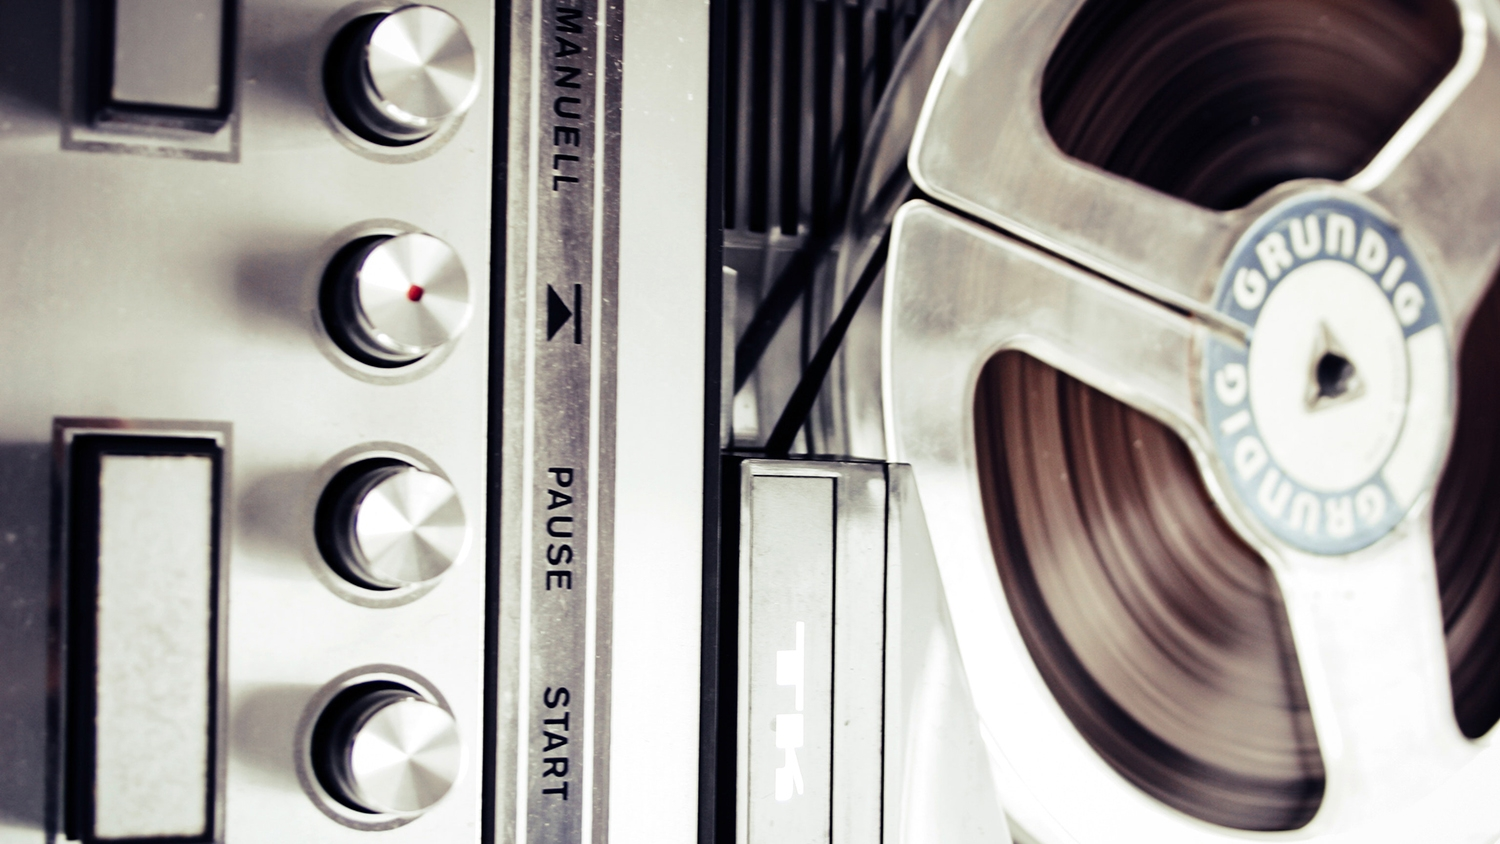 old-record-player-recorder-92066.jpg